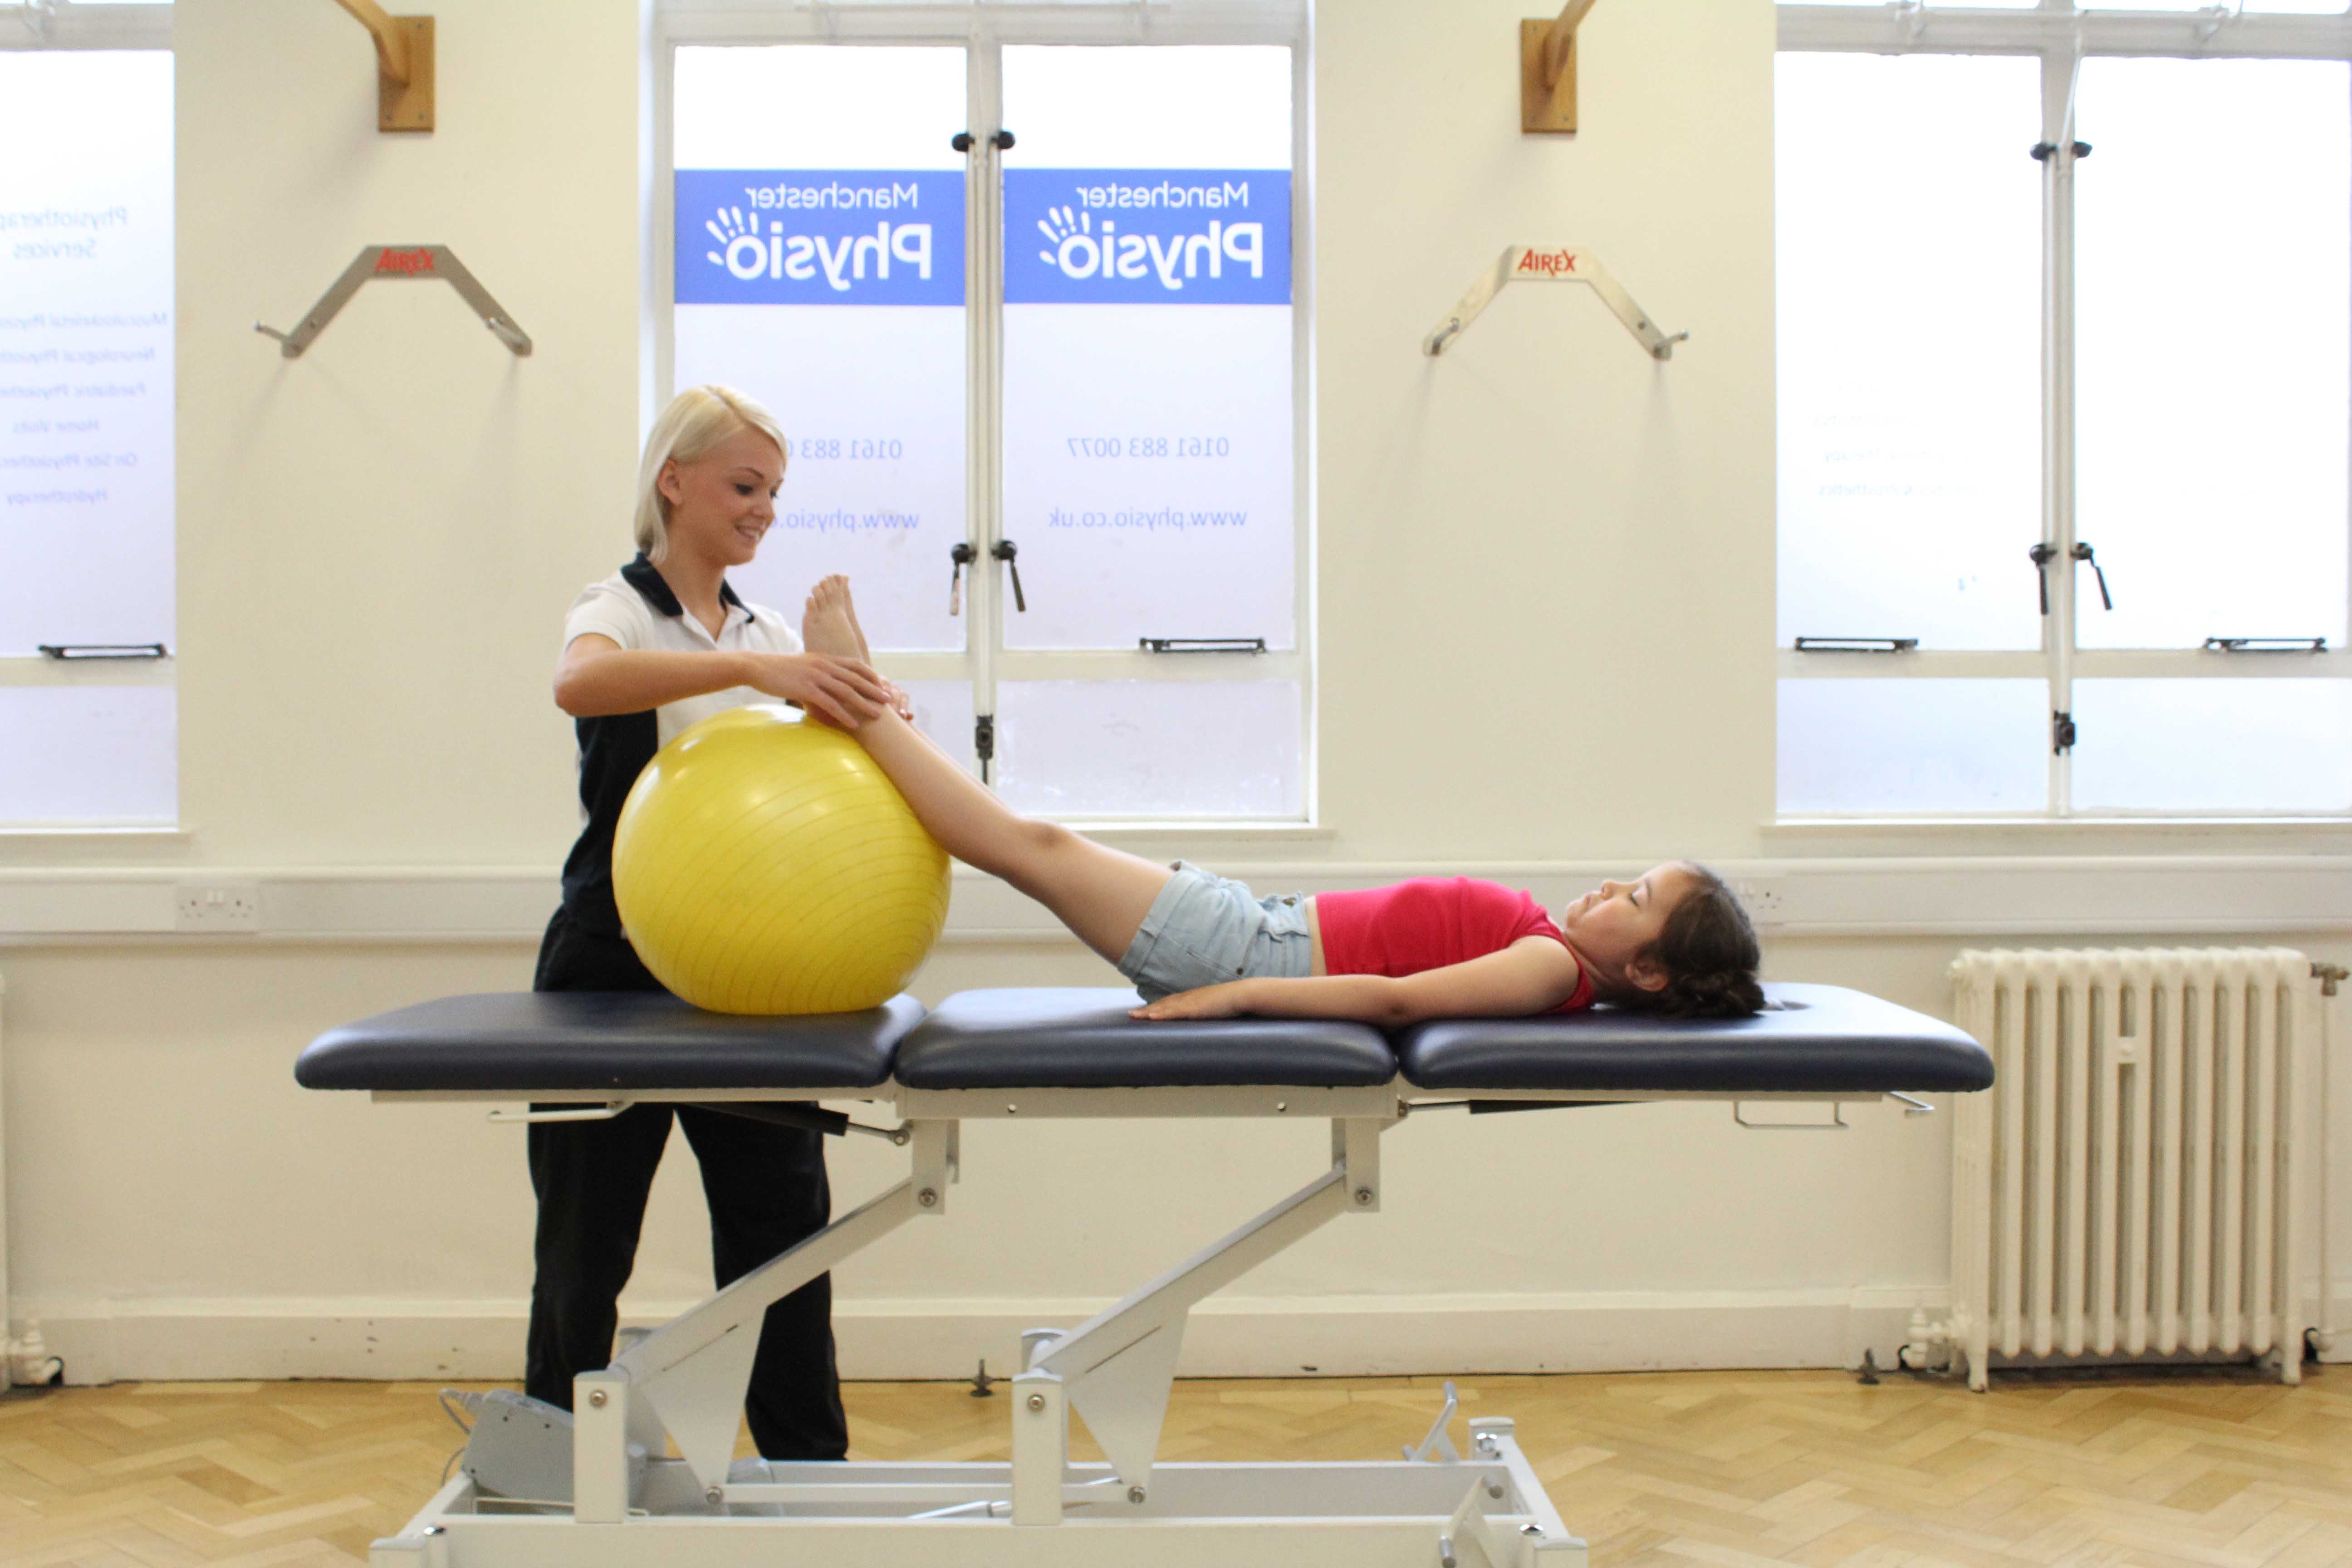 Massage and mobilisation of the knees to relieve pain and stiffness